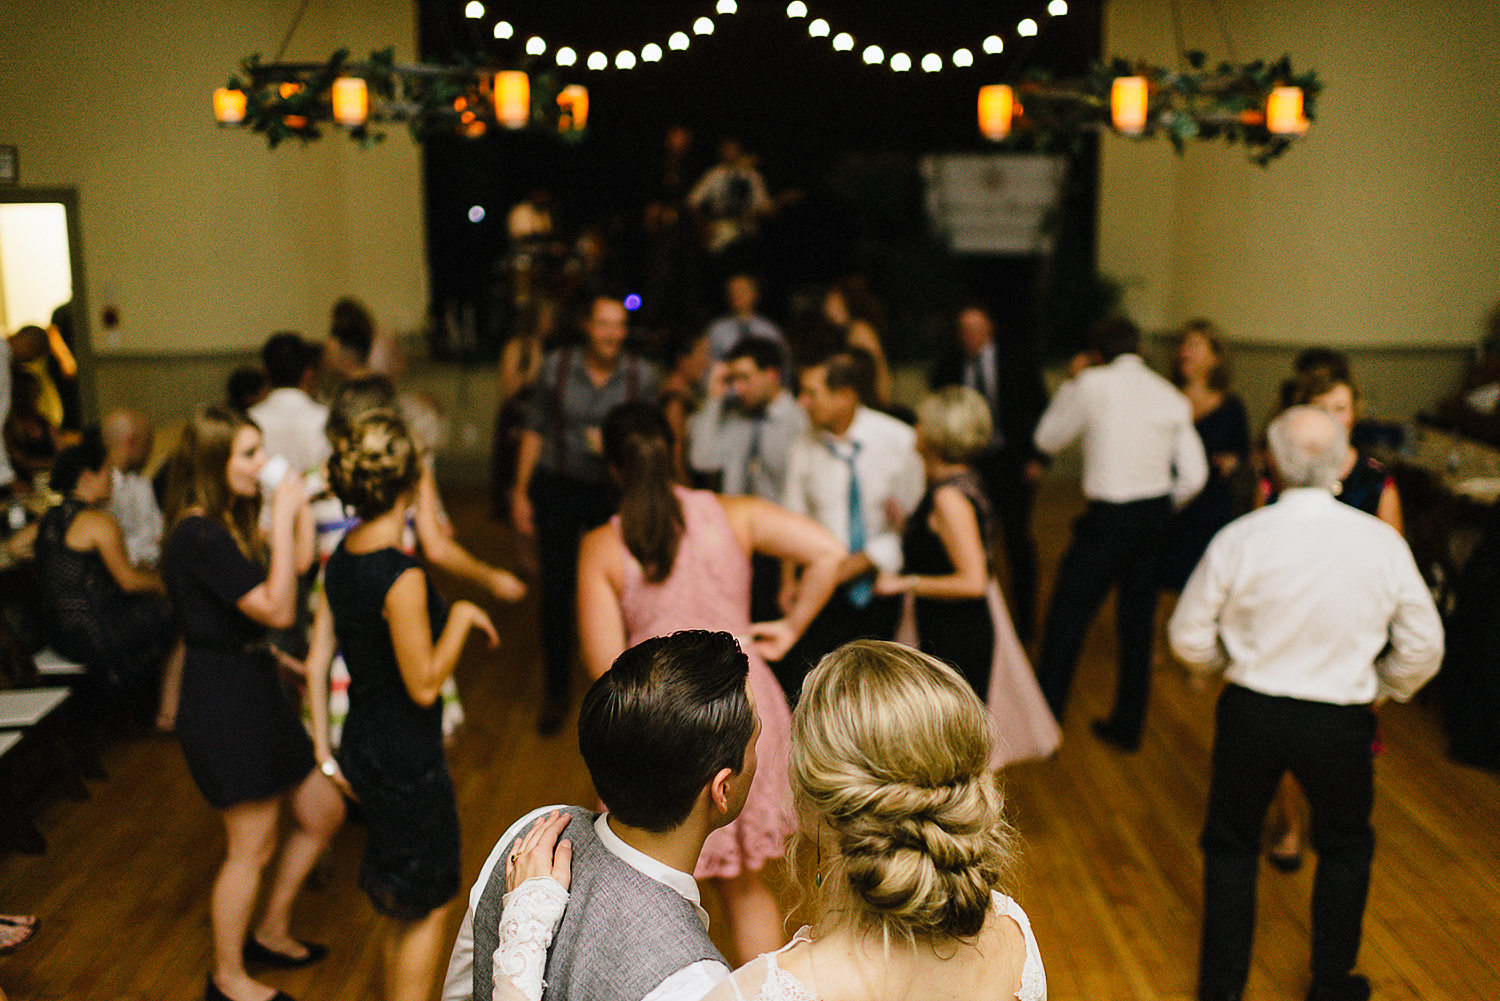 Best-Moody-Documentary-Wedding-Photography-Photojournalism-Vintage-Small-Town-Chapel-Wedding-Toronto-Ontario_Reception-Dance-Party-Bride-groom-Taking-it-in.jpg